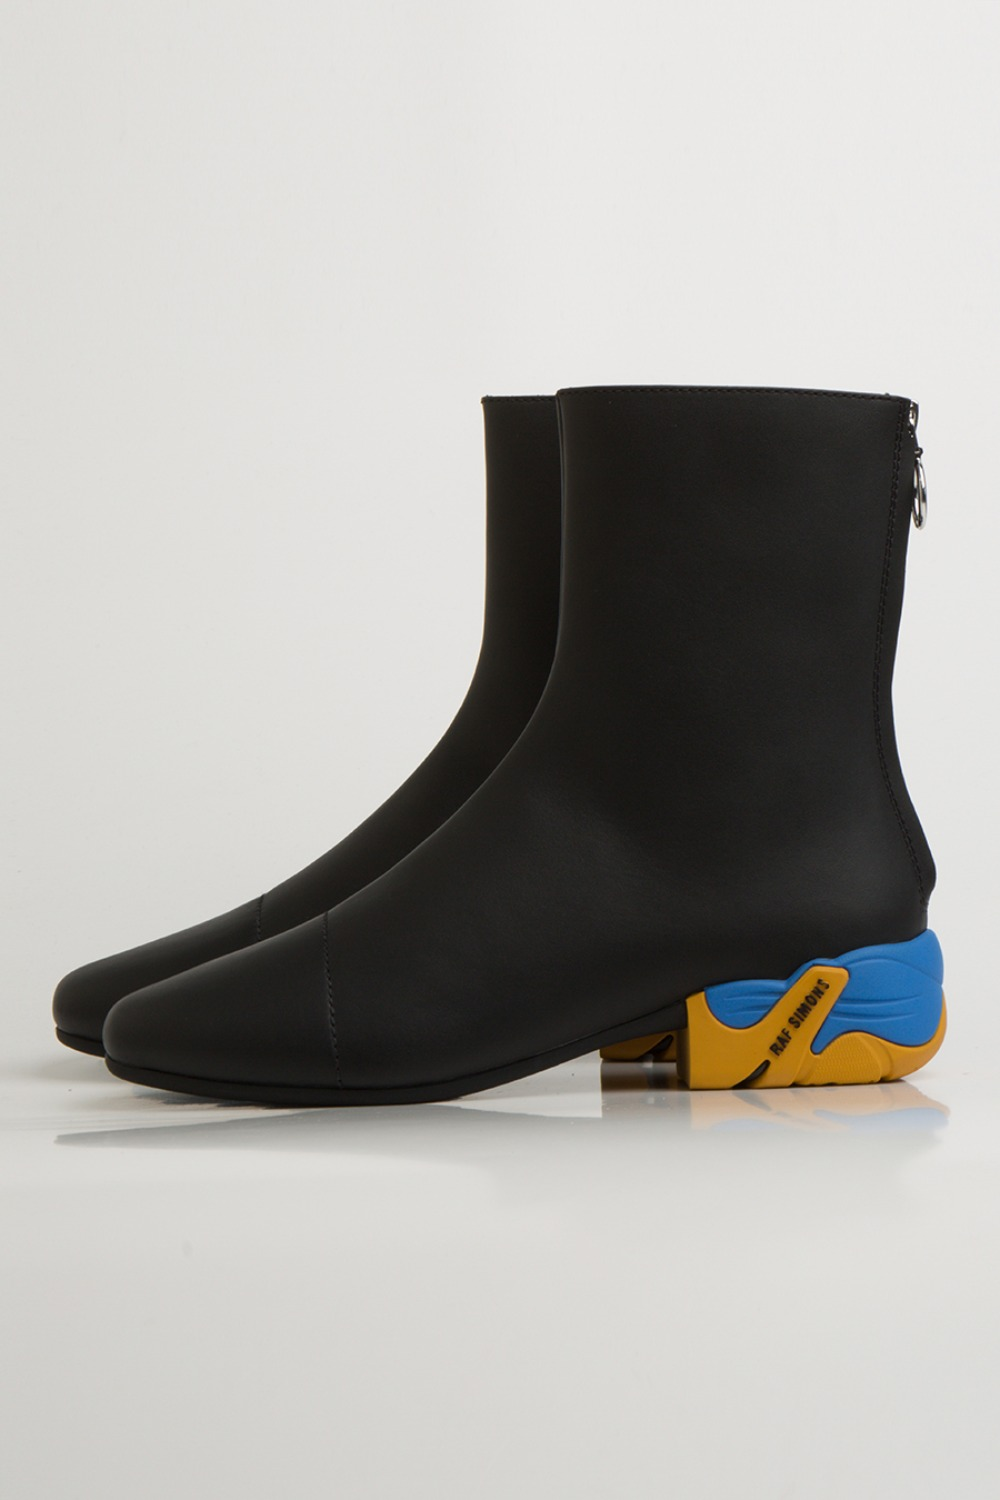 SOLARIS-2 HIGH 202-984 LEATHER BLACK/BLUE/YELLOW